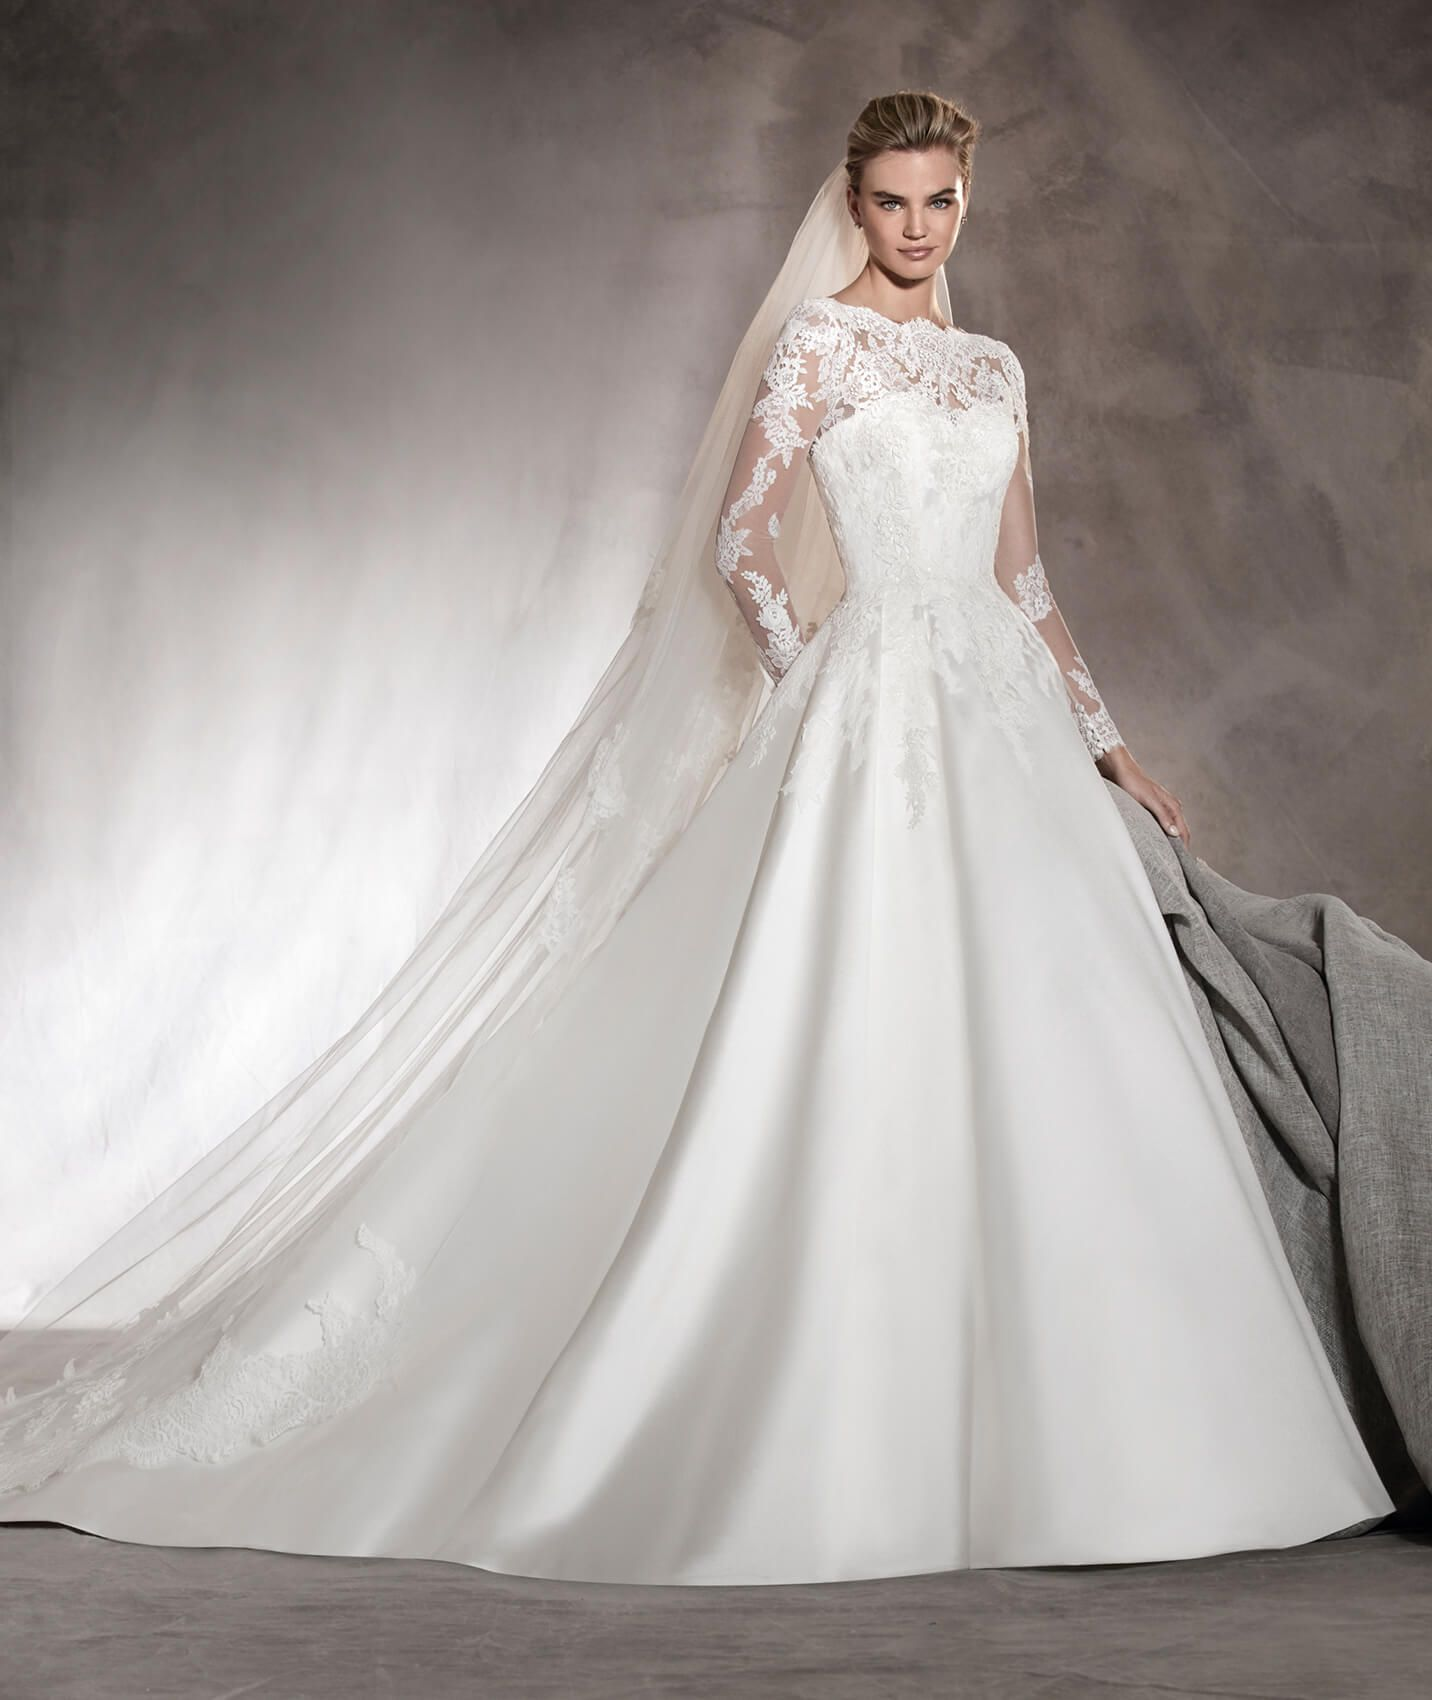 ALHAMBRA - Mikado wedding dress with lace, bateau neckline and ...